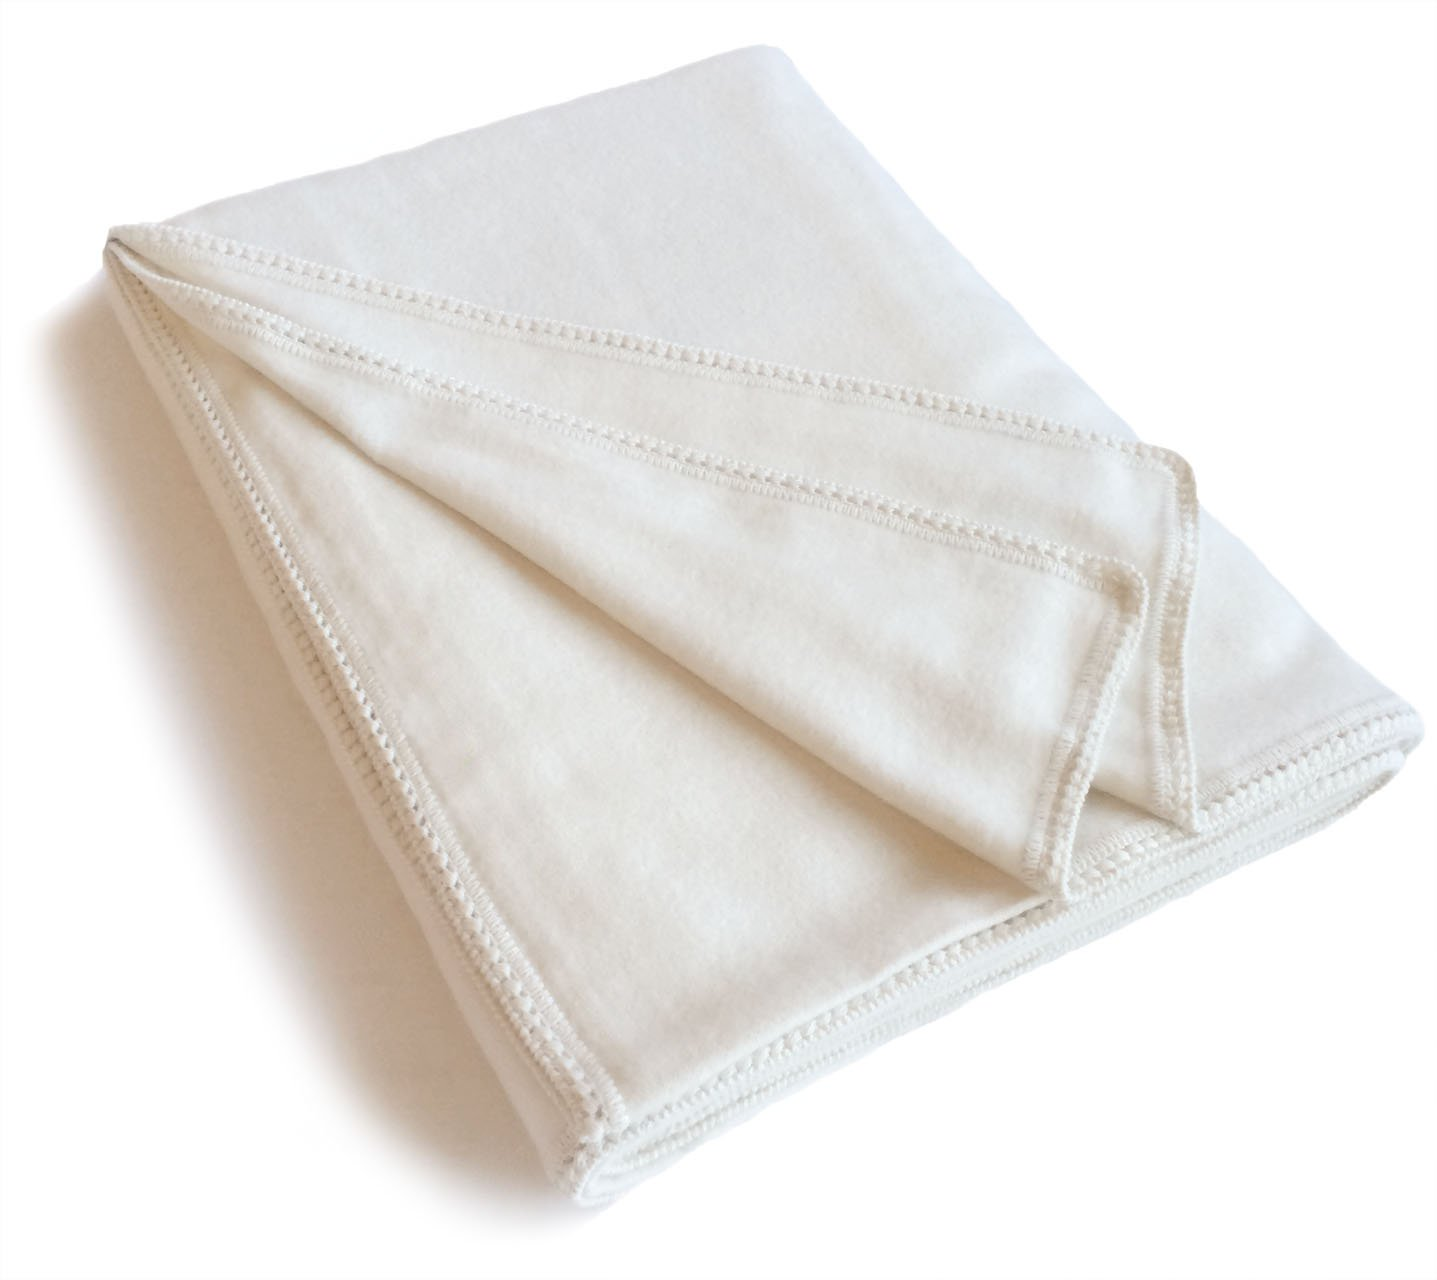 Luxurious Alpaca Bed Blanket, Naturally Thermal, King, Cal King, Queen/Double/Full, and Twin/Single Sizes (Cal King, Off White)